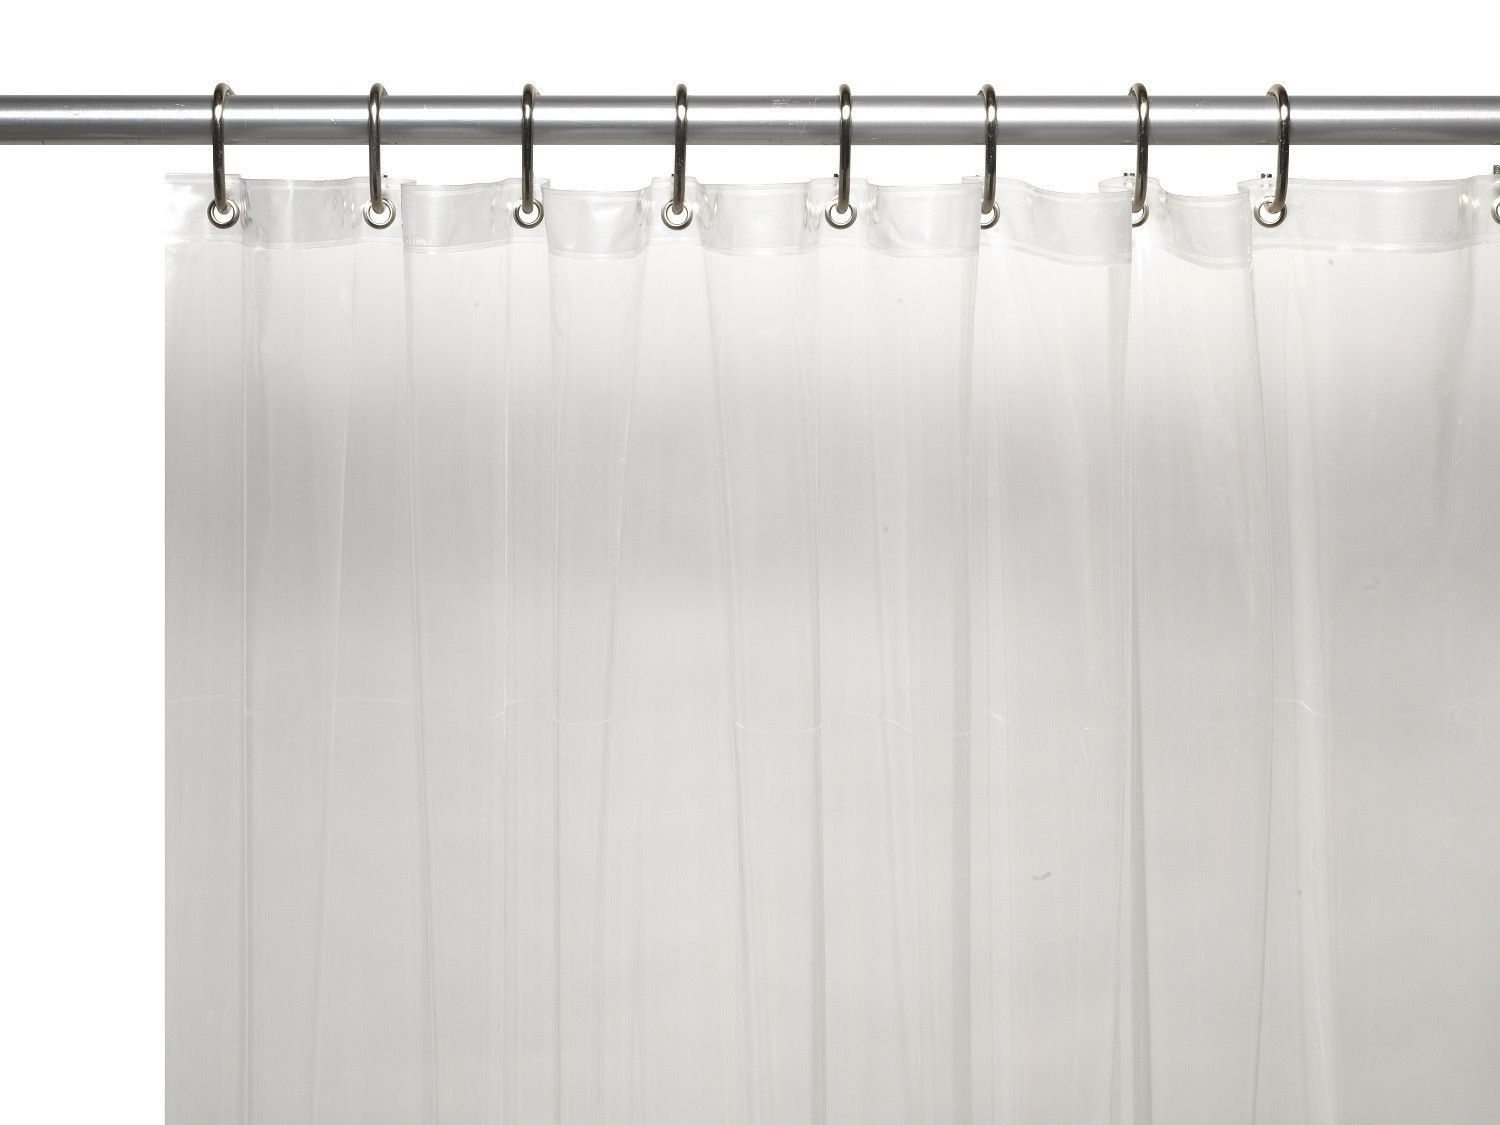 Royal Bath Extra Wide 5 Gauge Vinyl Shower Curtain Liner With Metal Grommets In Super Clear